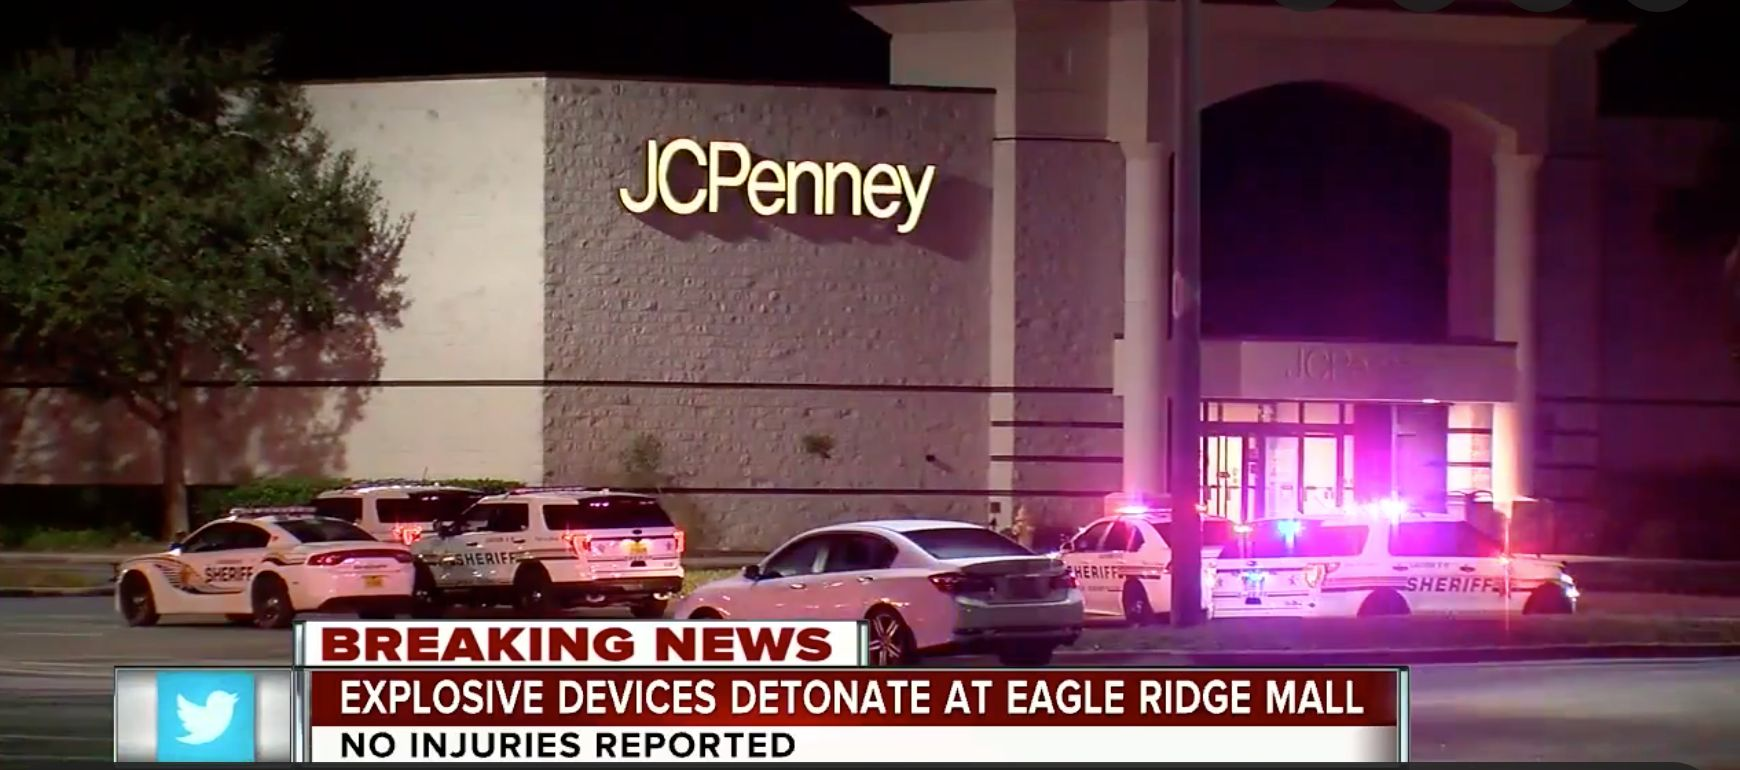 2 IEDs Explode At Florida Mall